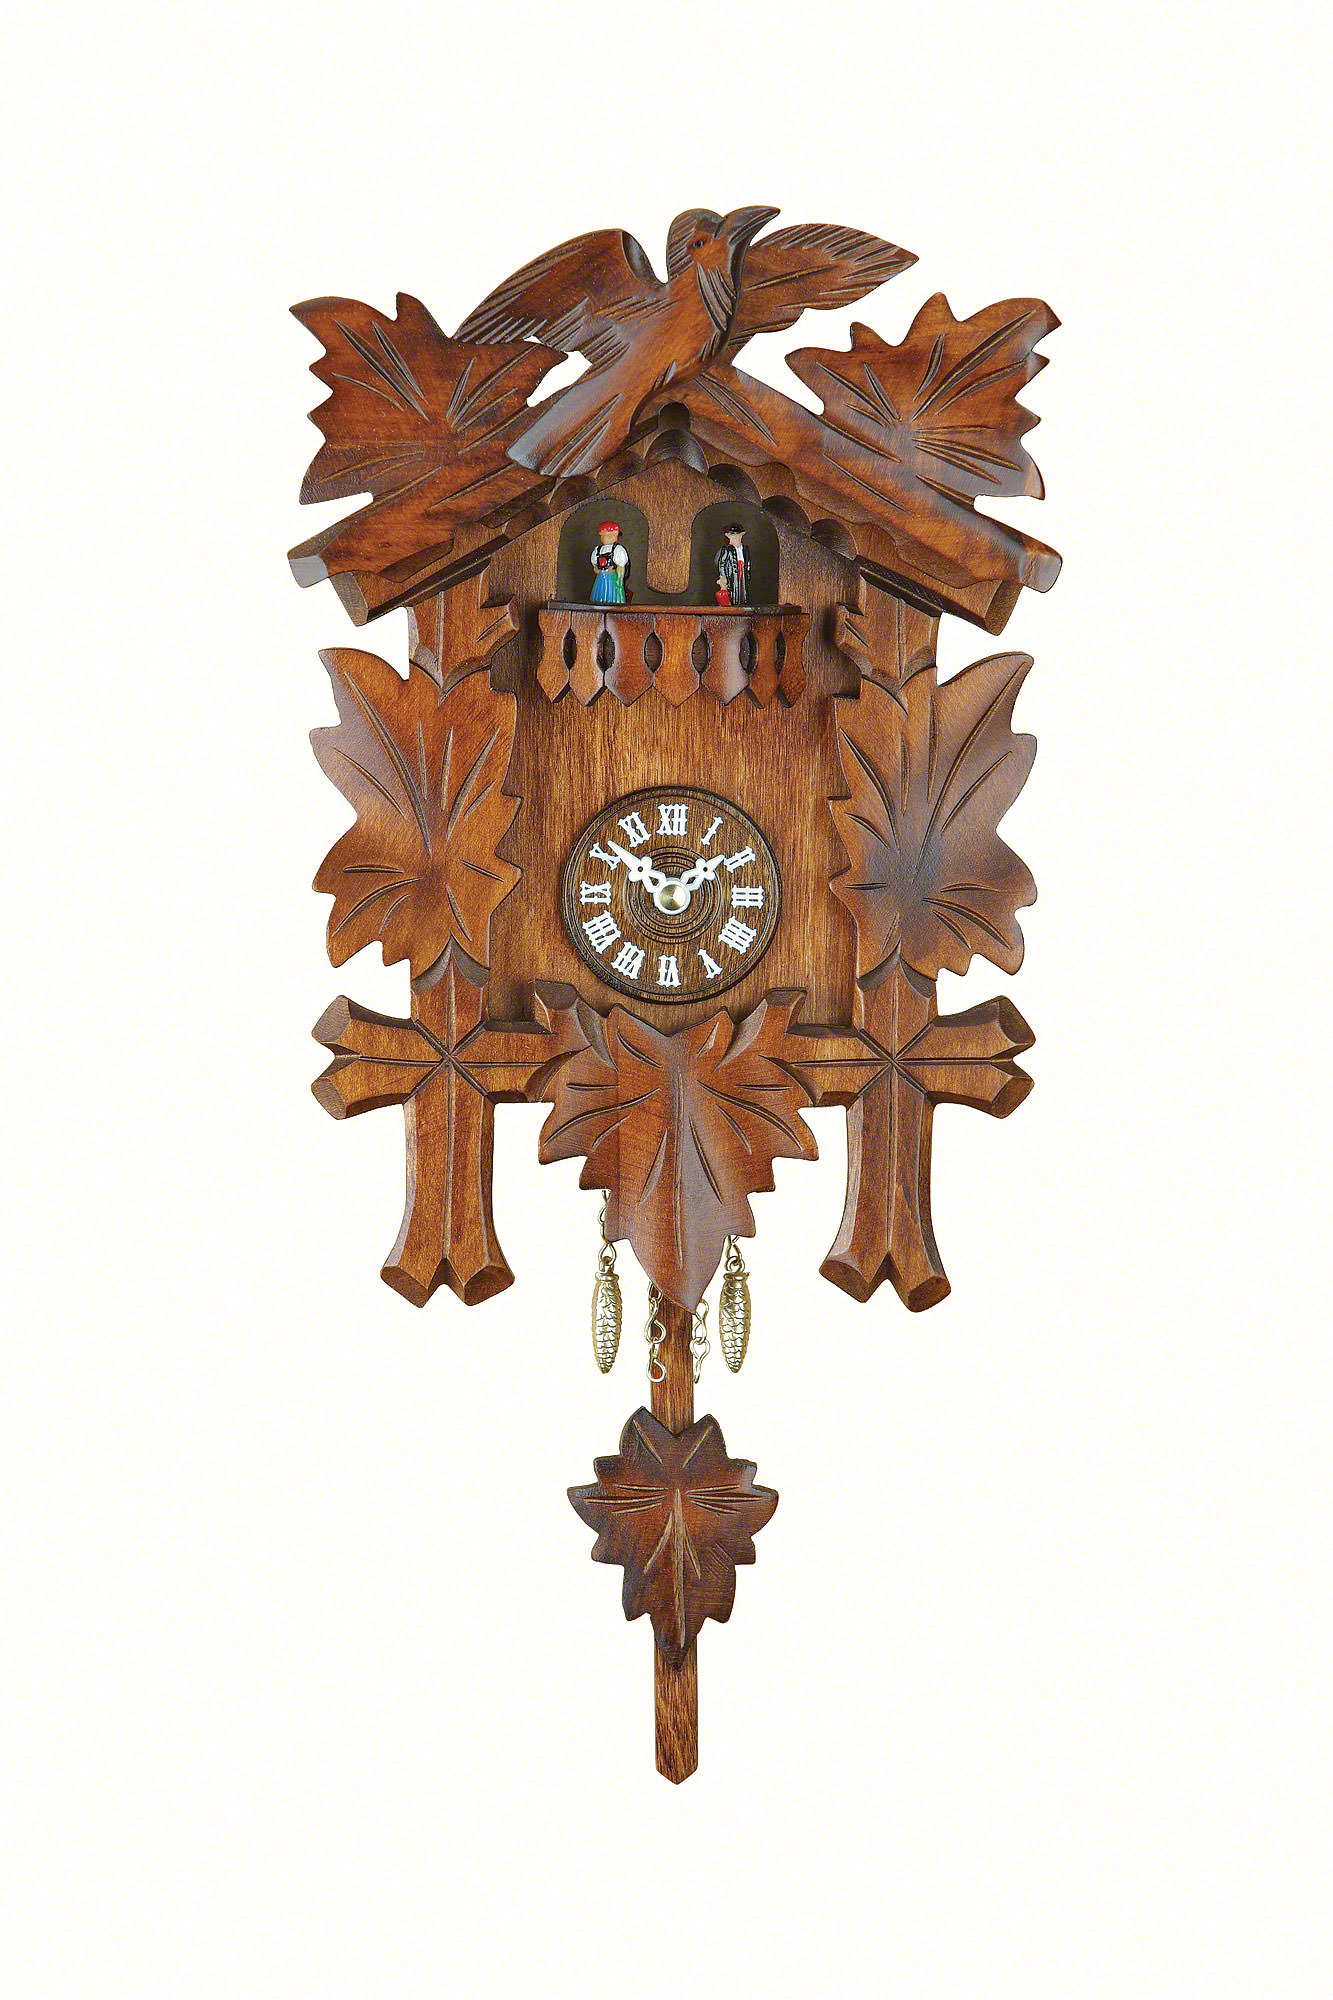 Black forest pendulum clock quartz movement 25cm by trenkle uhren 2018 pq mit kuckuckruf - Cuckoo clock pendulum ...